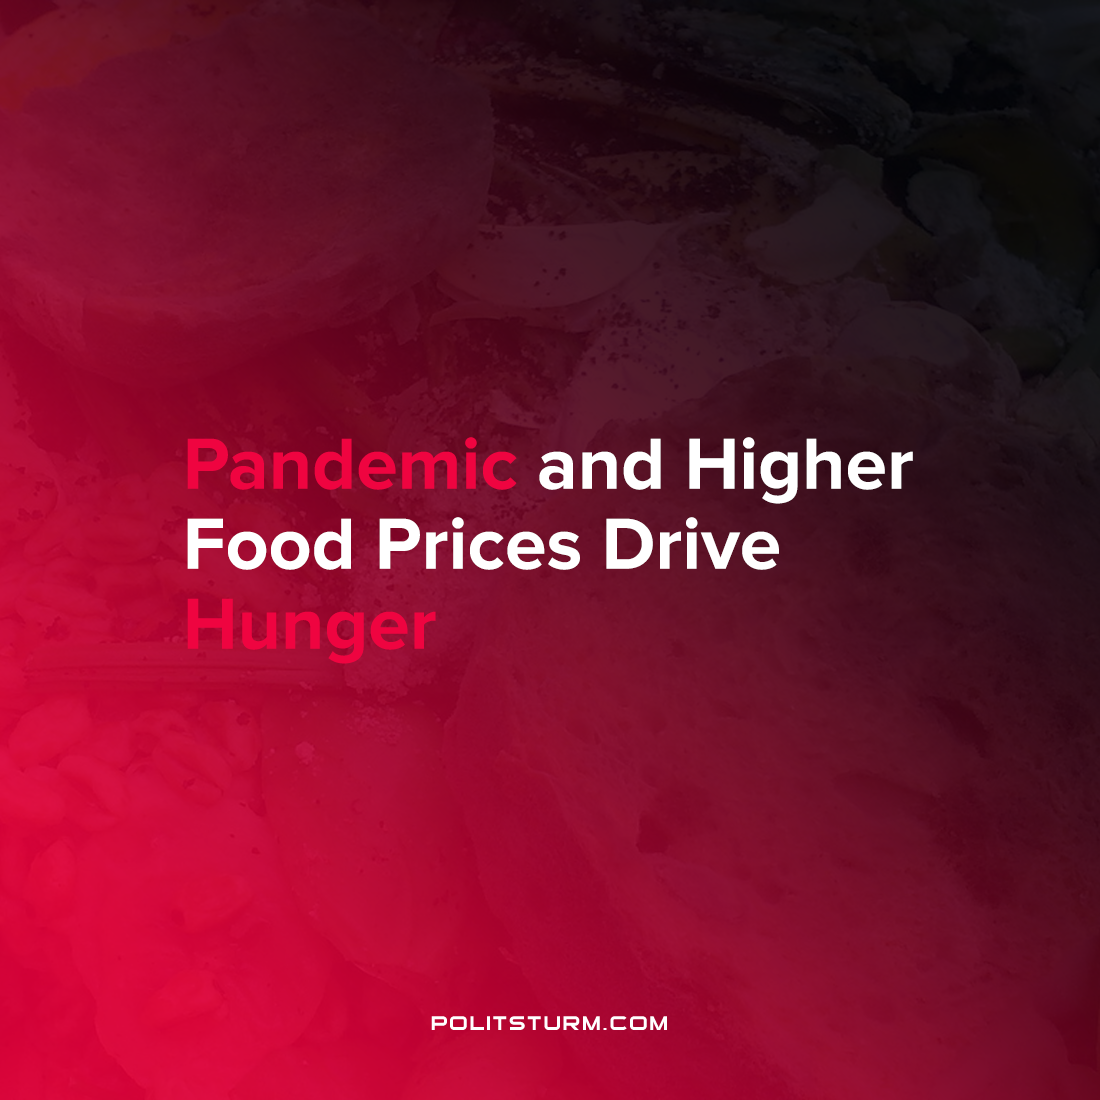 Pandemic and Higher Food Prices Drive Hunger